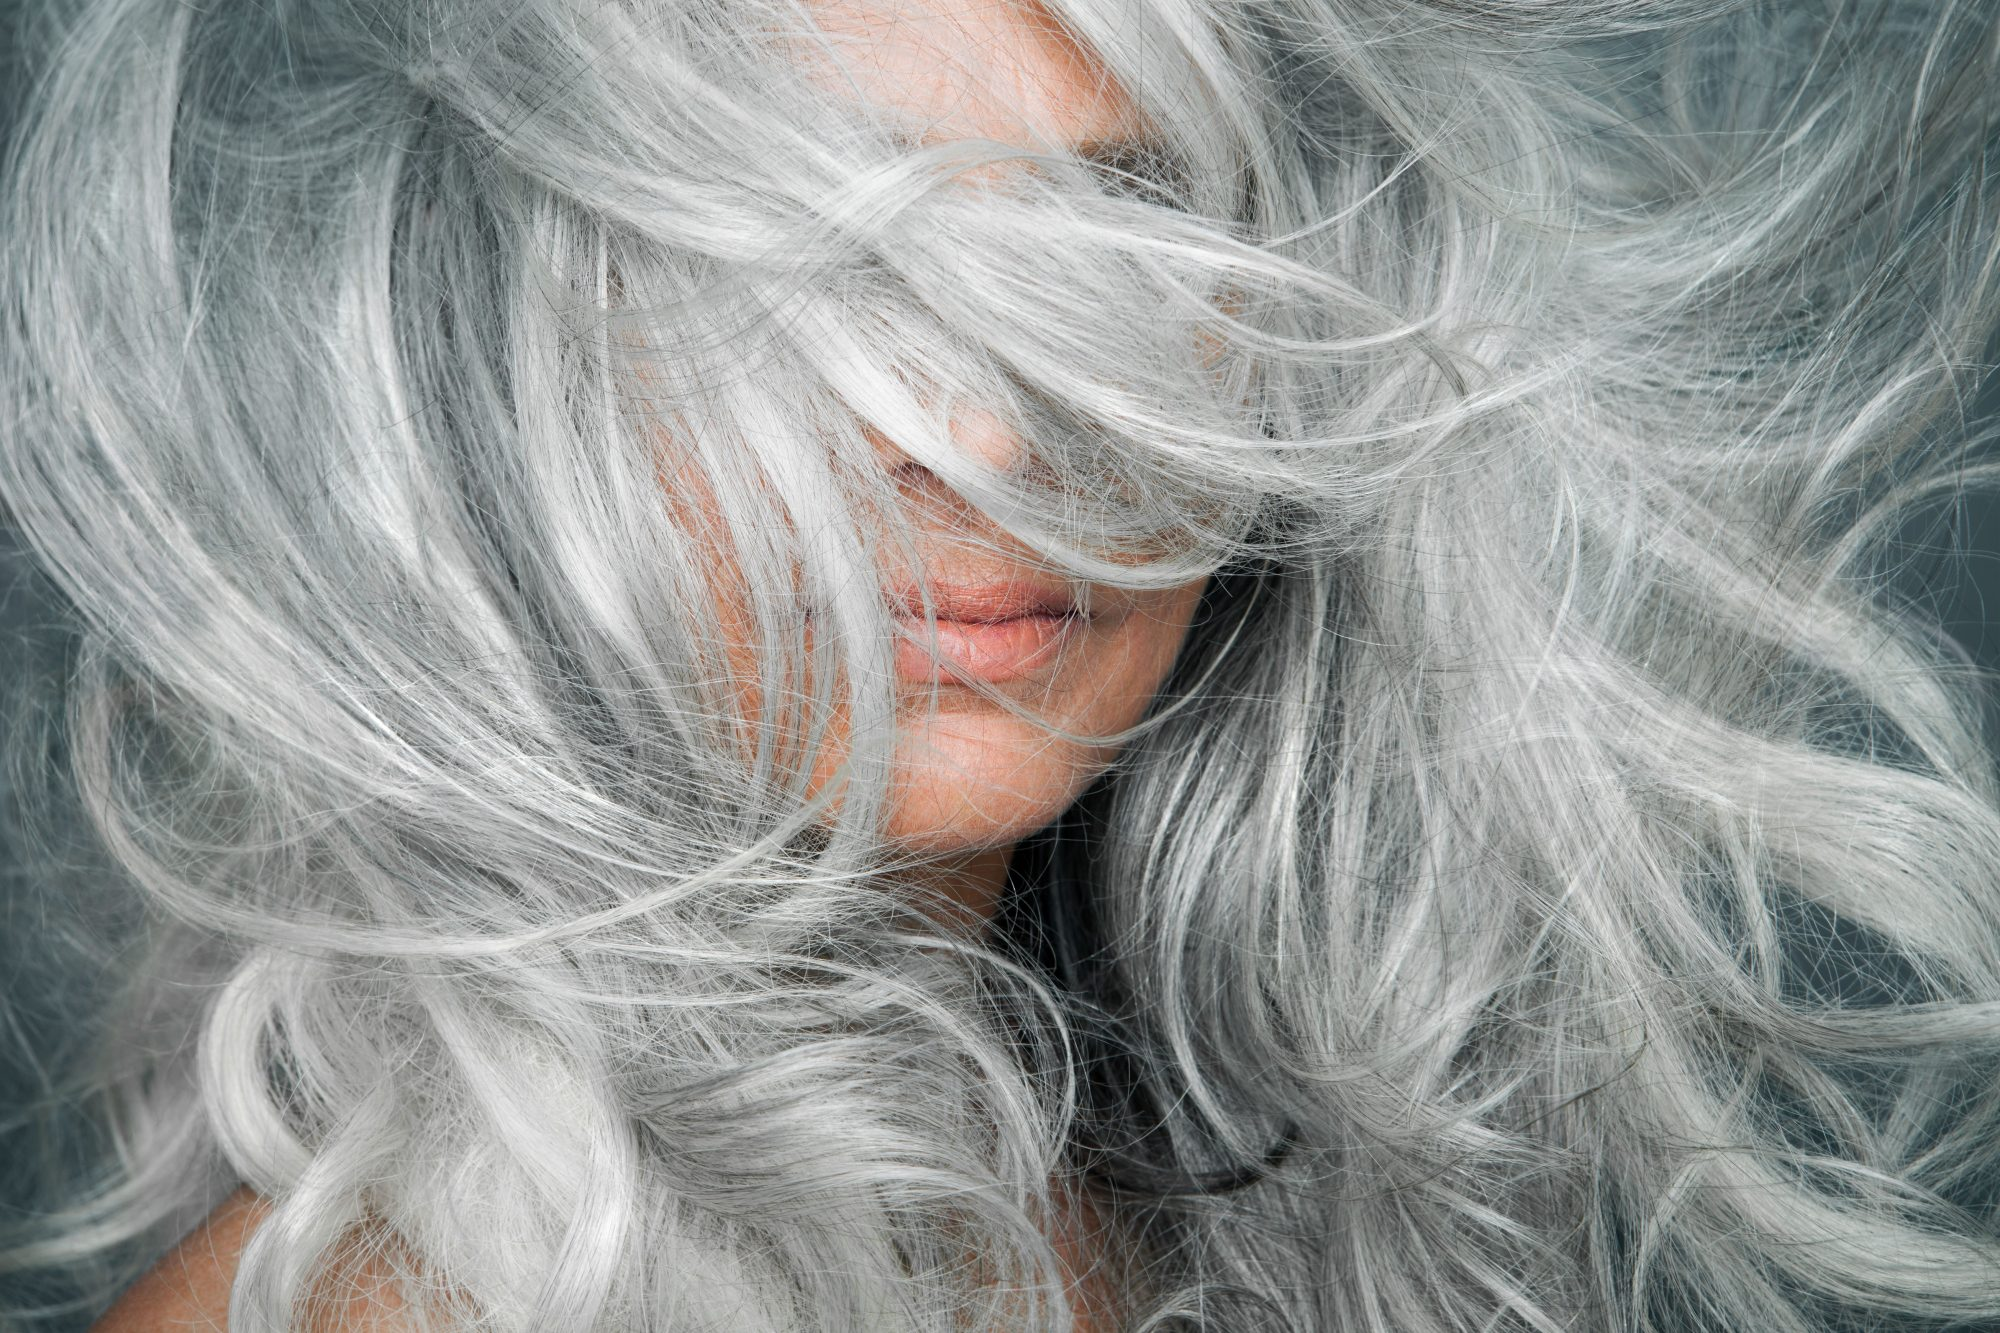 WATCH: There's An Entire Instagram Account Dedicated To Going Gray Naturally